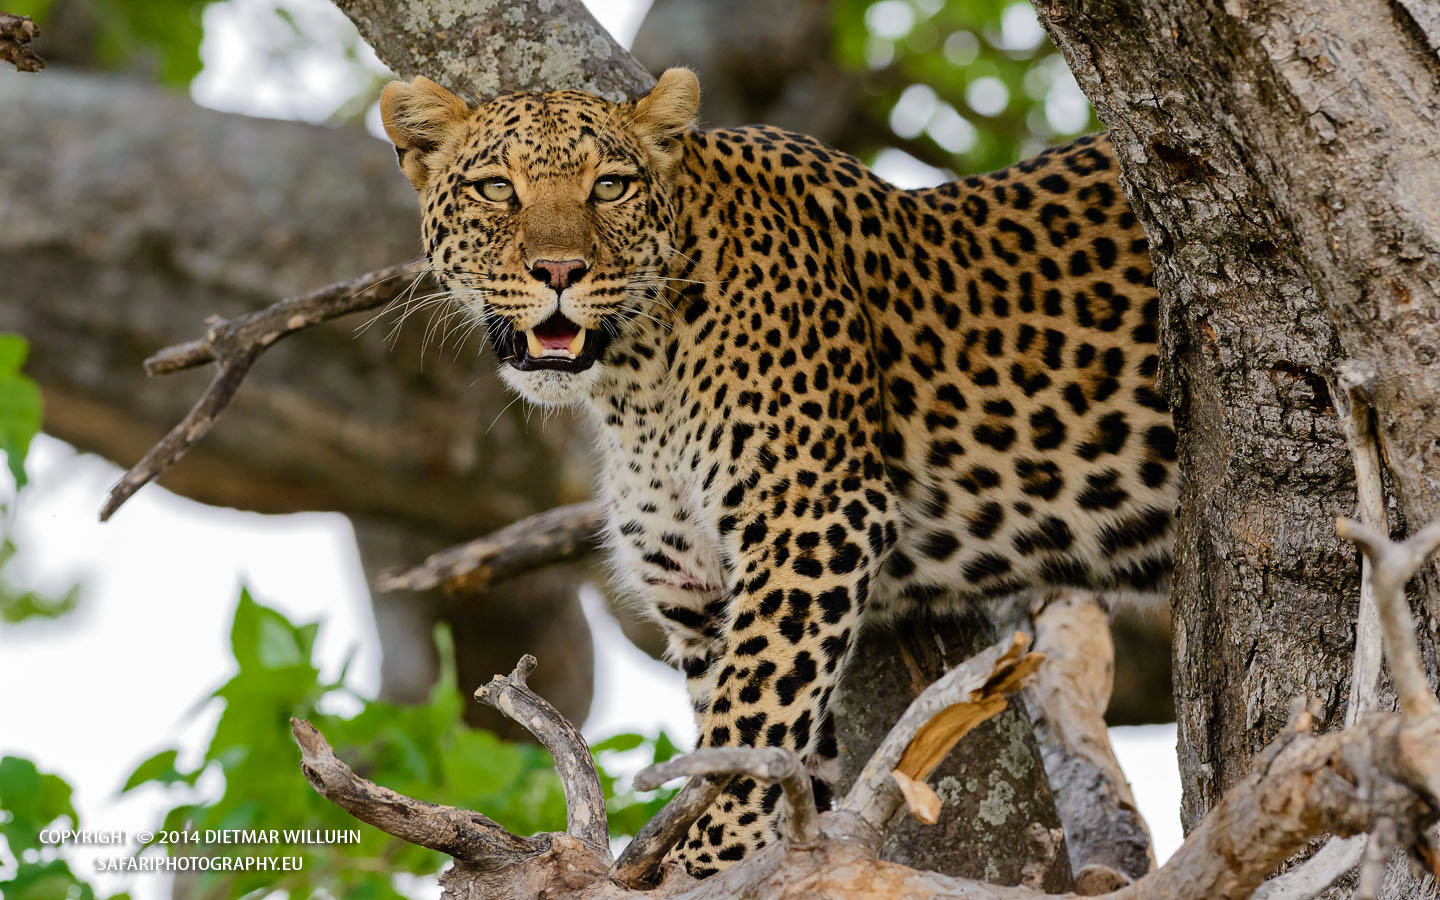 Safariphotography D. Willuhn Leopard